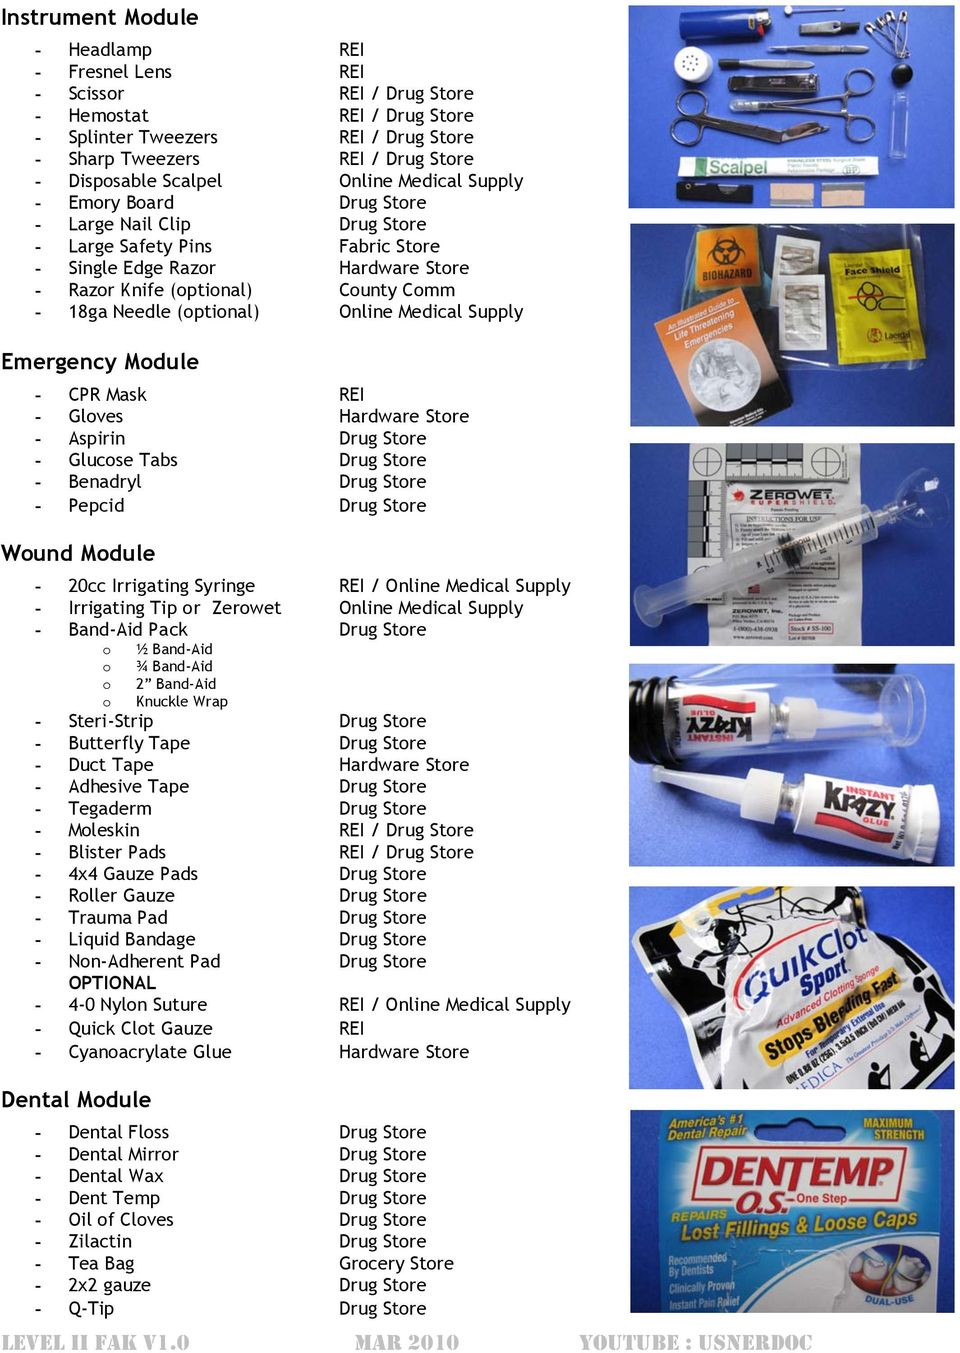 (optional) Online Medical Supply Emergency Module - CPR Mask REI - Gloves Hardware Store - Aspirin Drug Store - Glucose Tabs Drug Store - Benadryl Drug Store - Pepcid Drug Store Wound Module - 20cc